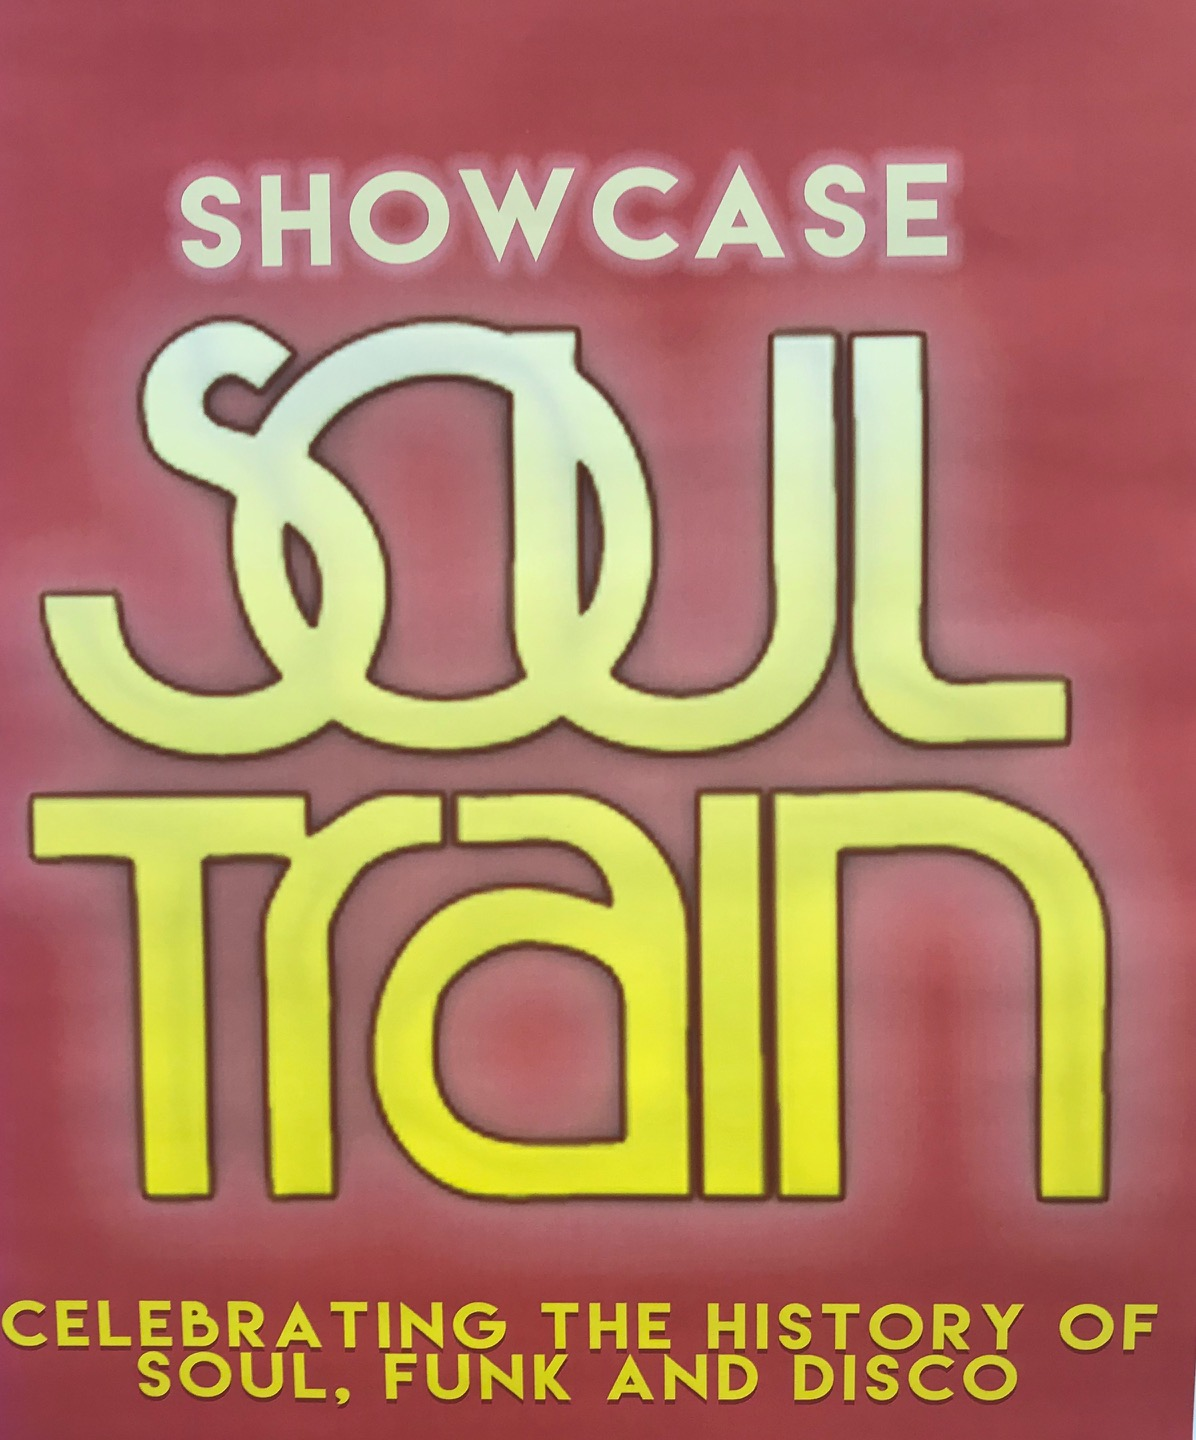 Showcase presents SOUL TRAIN banner image